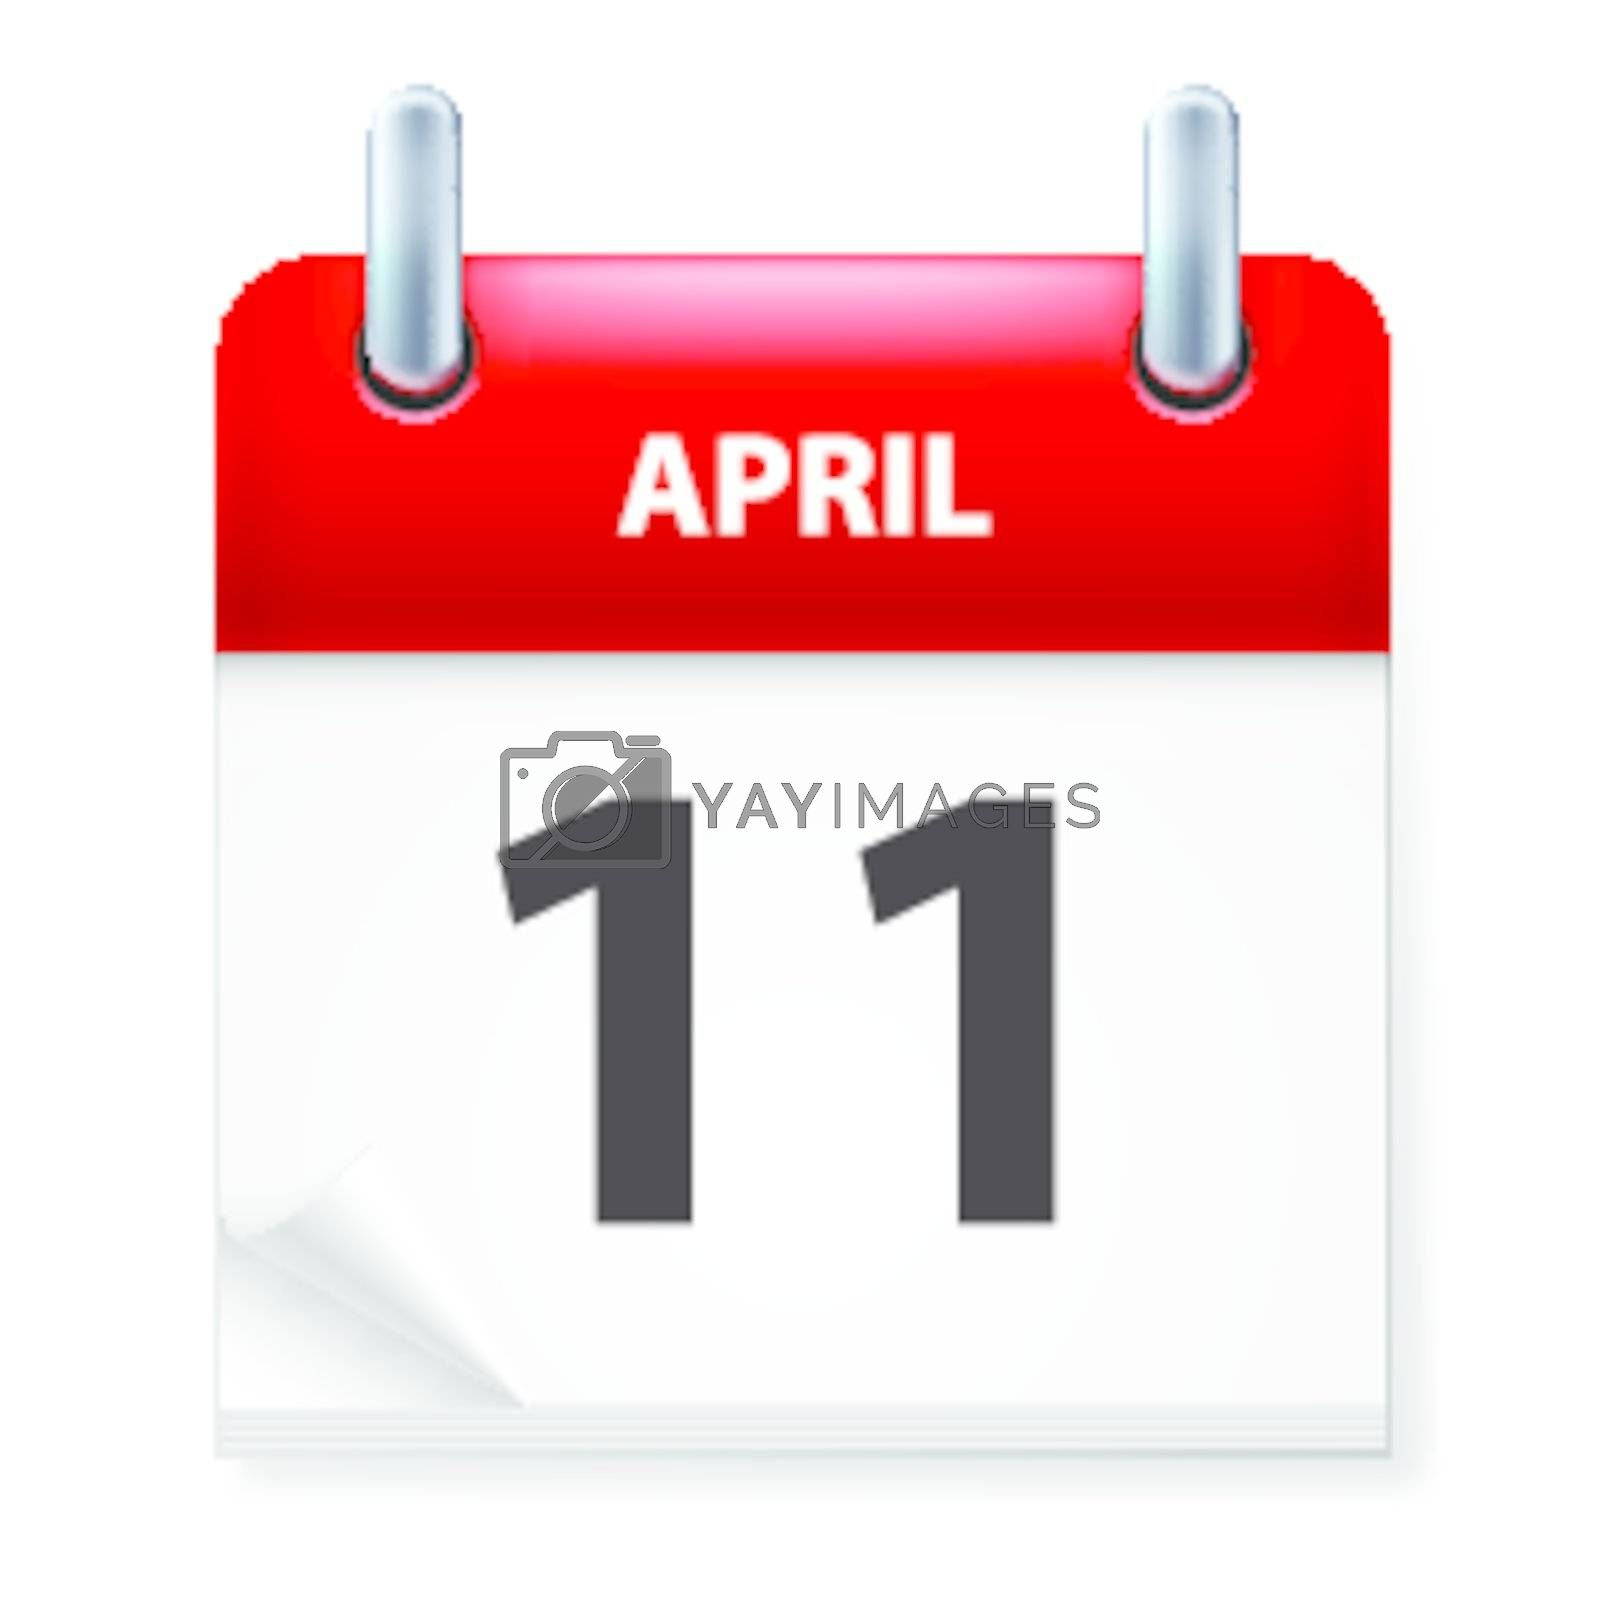 Eleventh in April Calendar icon on white background